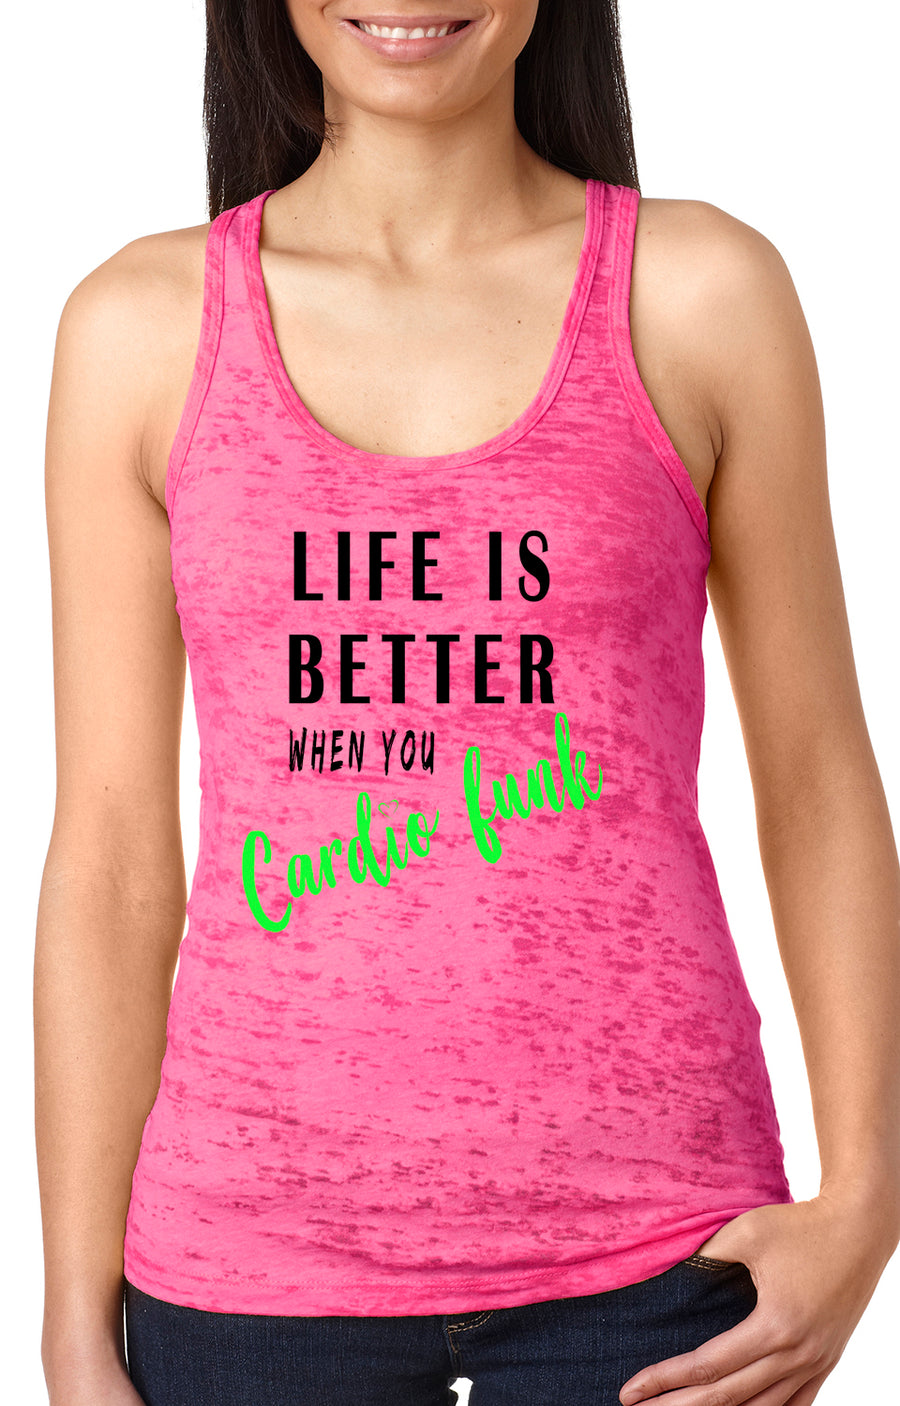 Life is better women's burnout racer back tank shocking pink